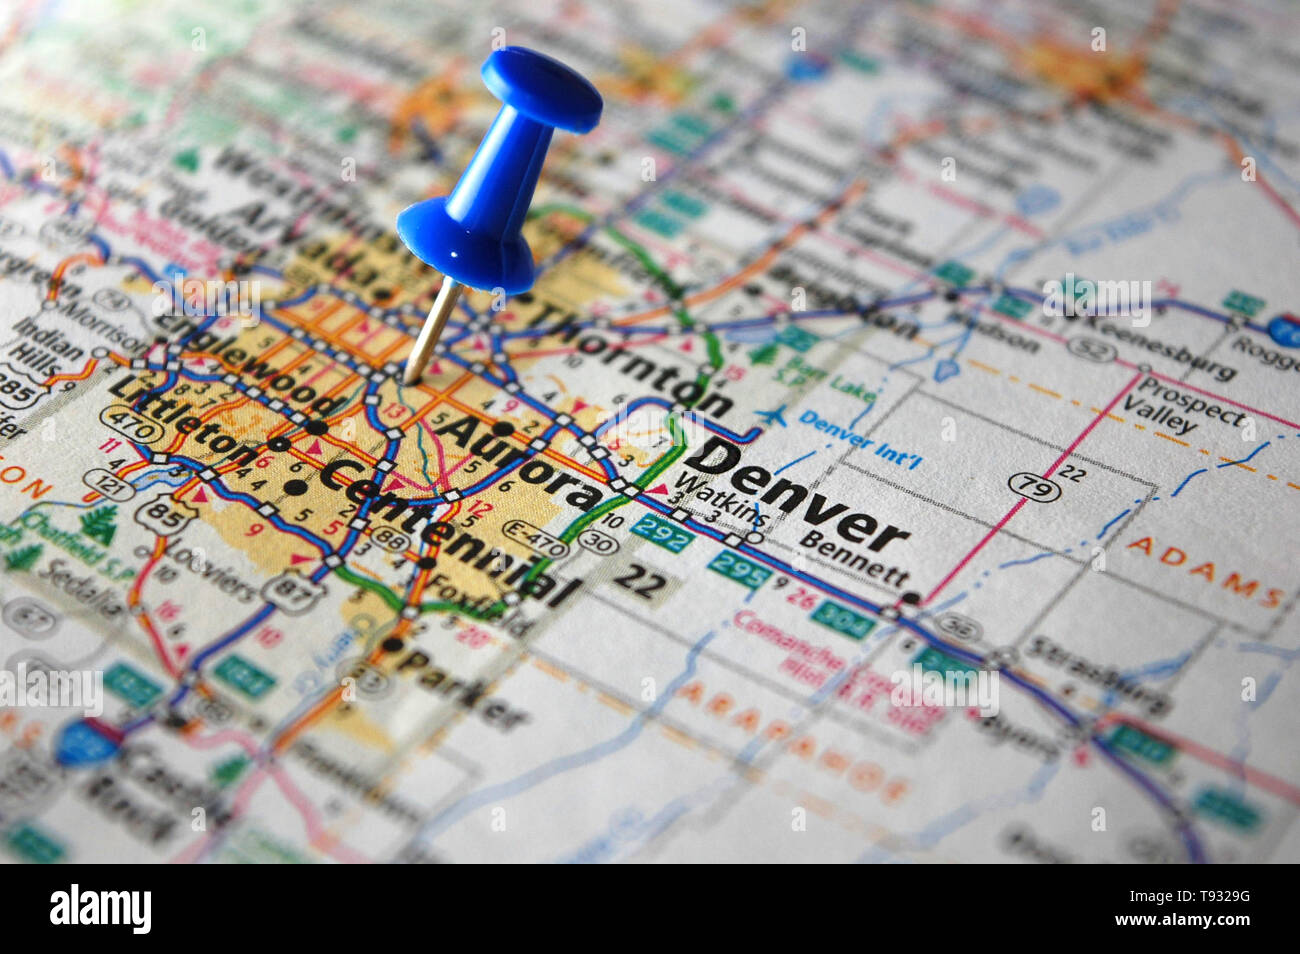 A map of Denver, Colorado marked with a push pin. - Stock Image